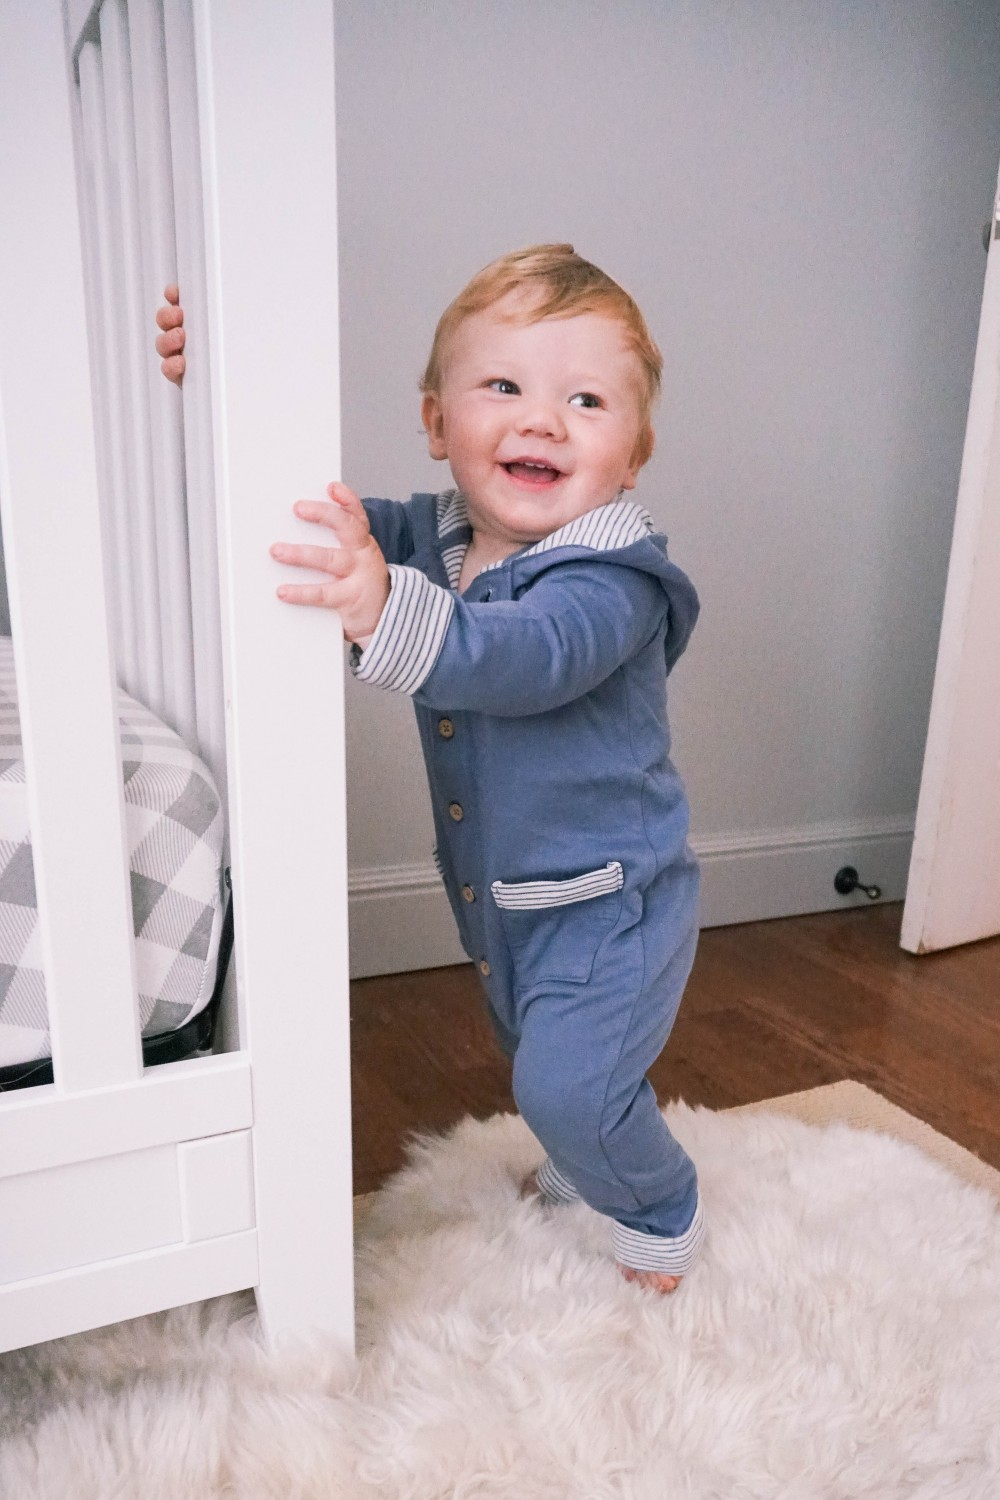 Carter's Baby-JCPenney-Baby Boy Clothes Under $30-Fall Fashion for Baby-Baby Clothing Sale-Have Need Want 9